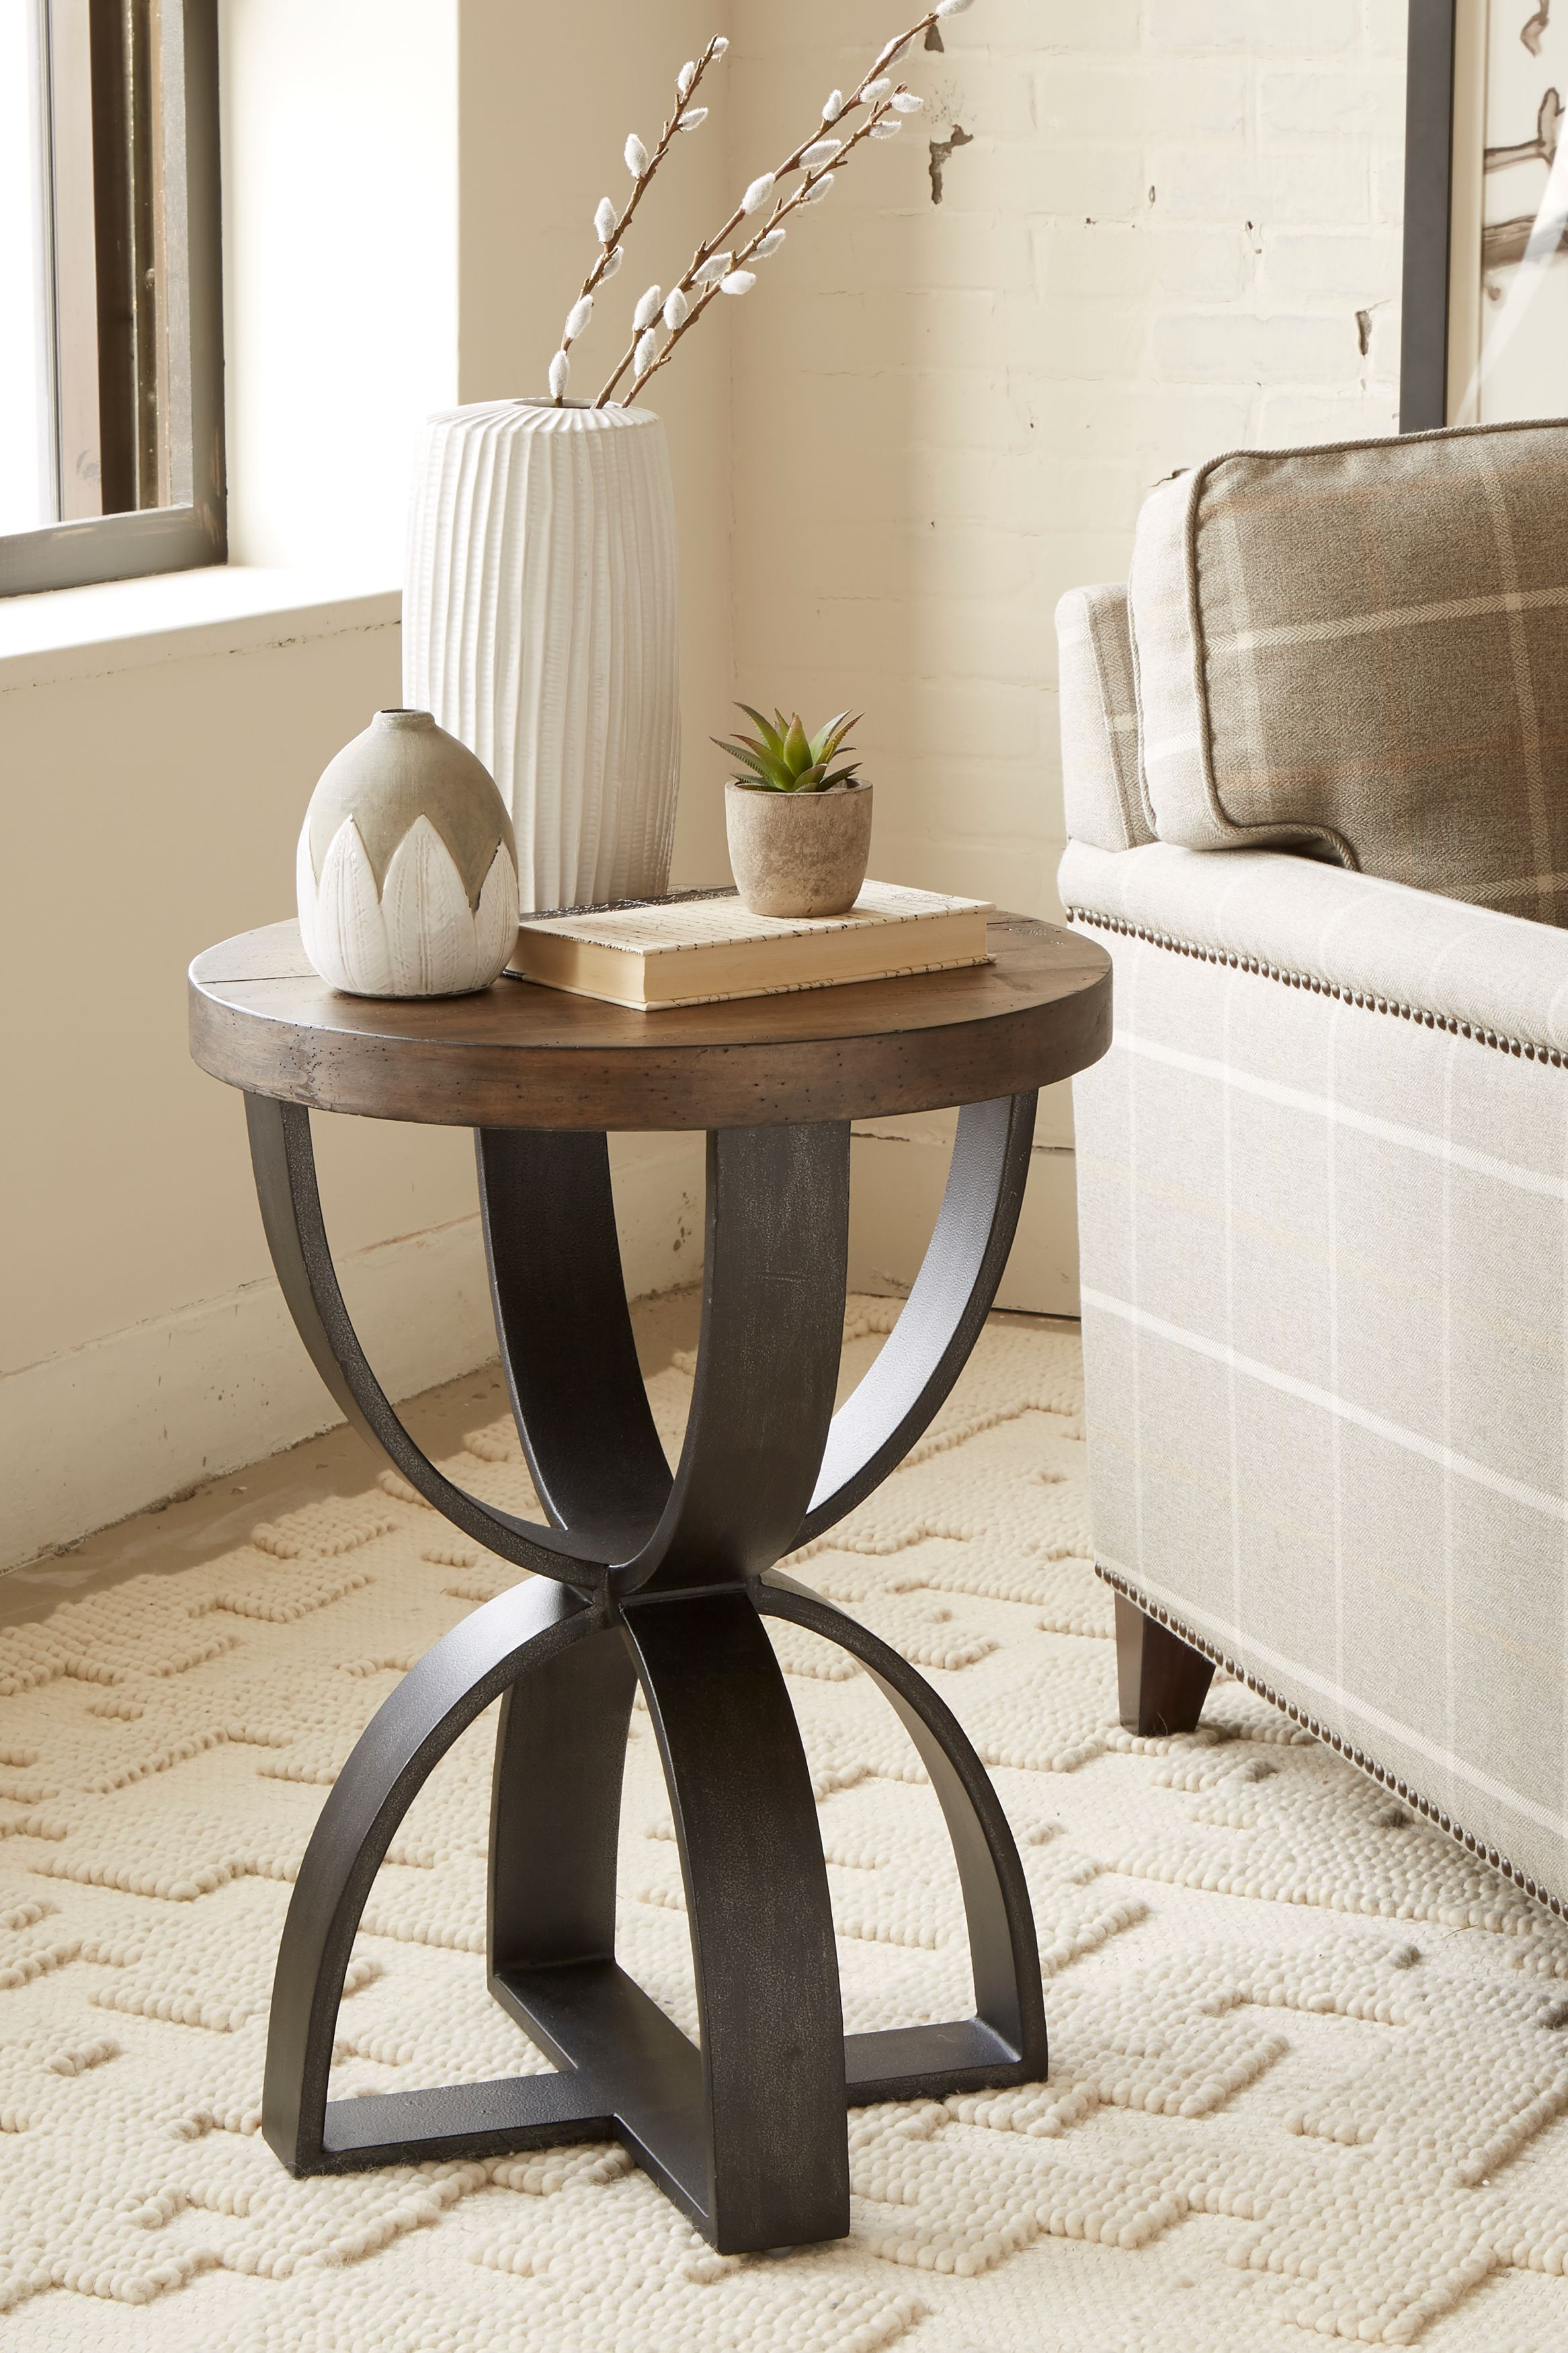 Brazen Chairside End Table In 2020 Rowe Furniture Eclectic Furniture Furniture